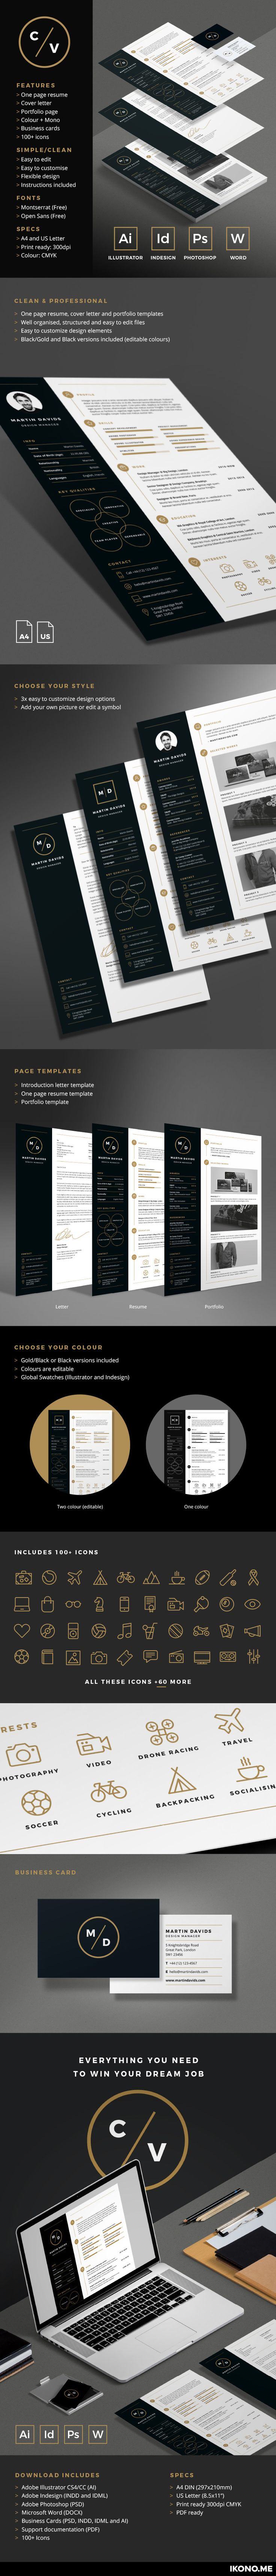 76 best Resume images on Pinterest | Resume, Resume design and ...